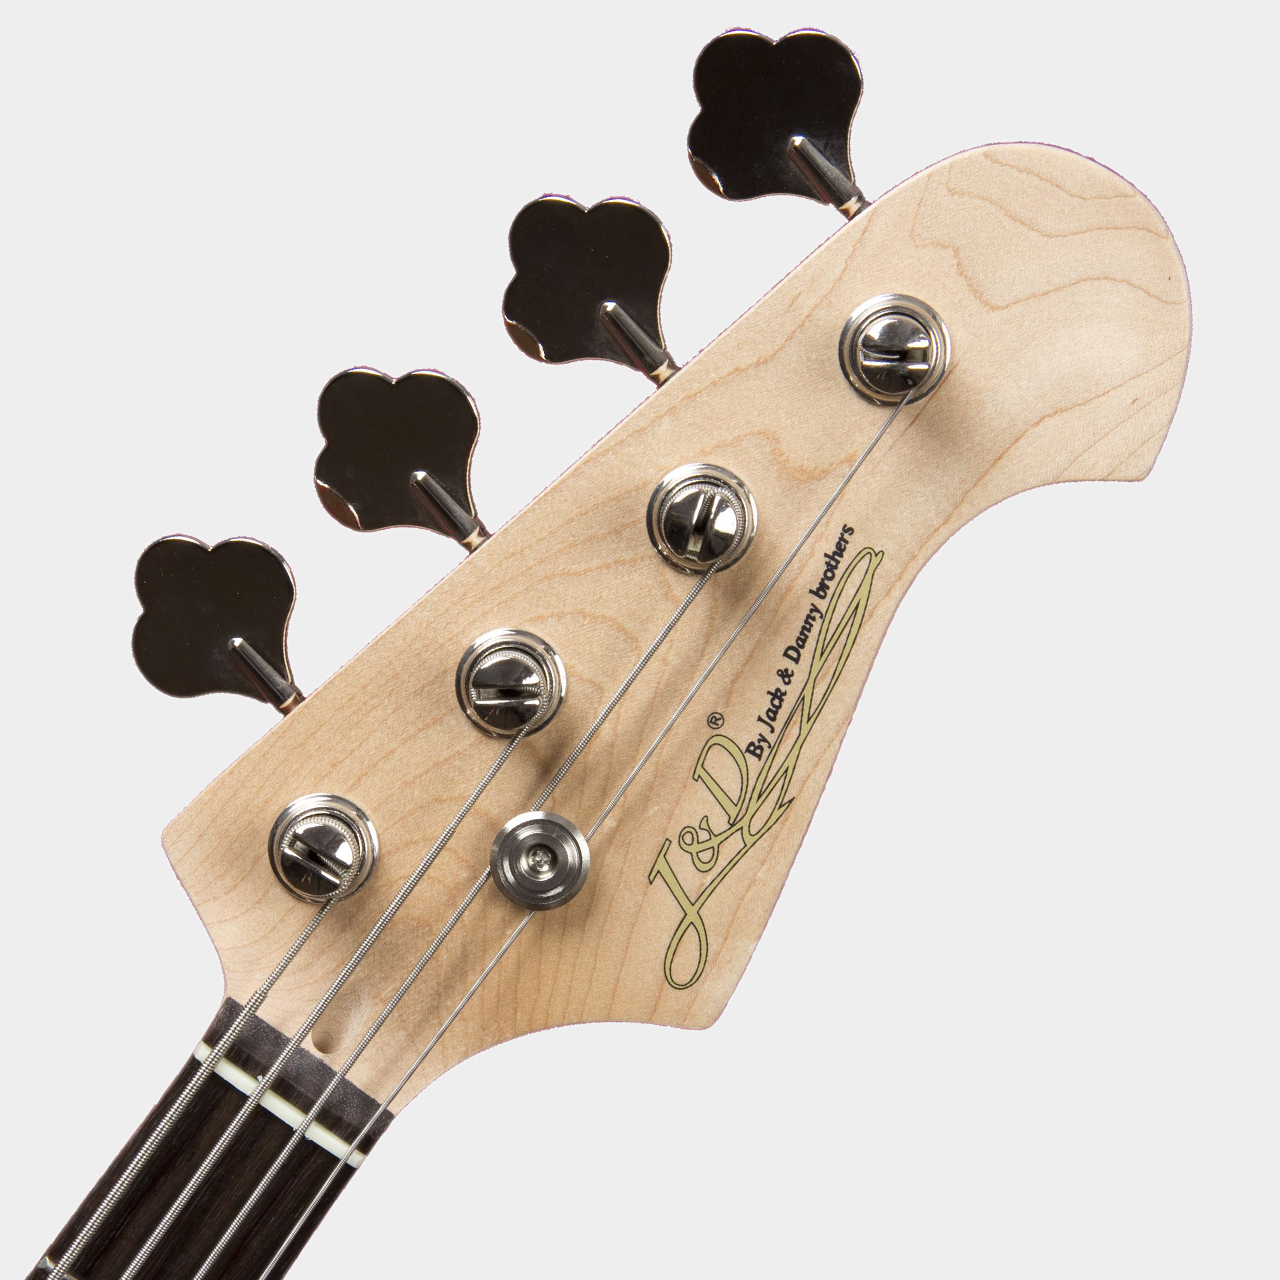 JACK & DANNY JB Black High Gloss Headstock Detail